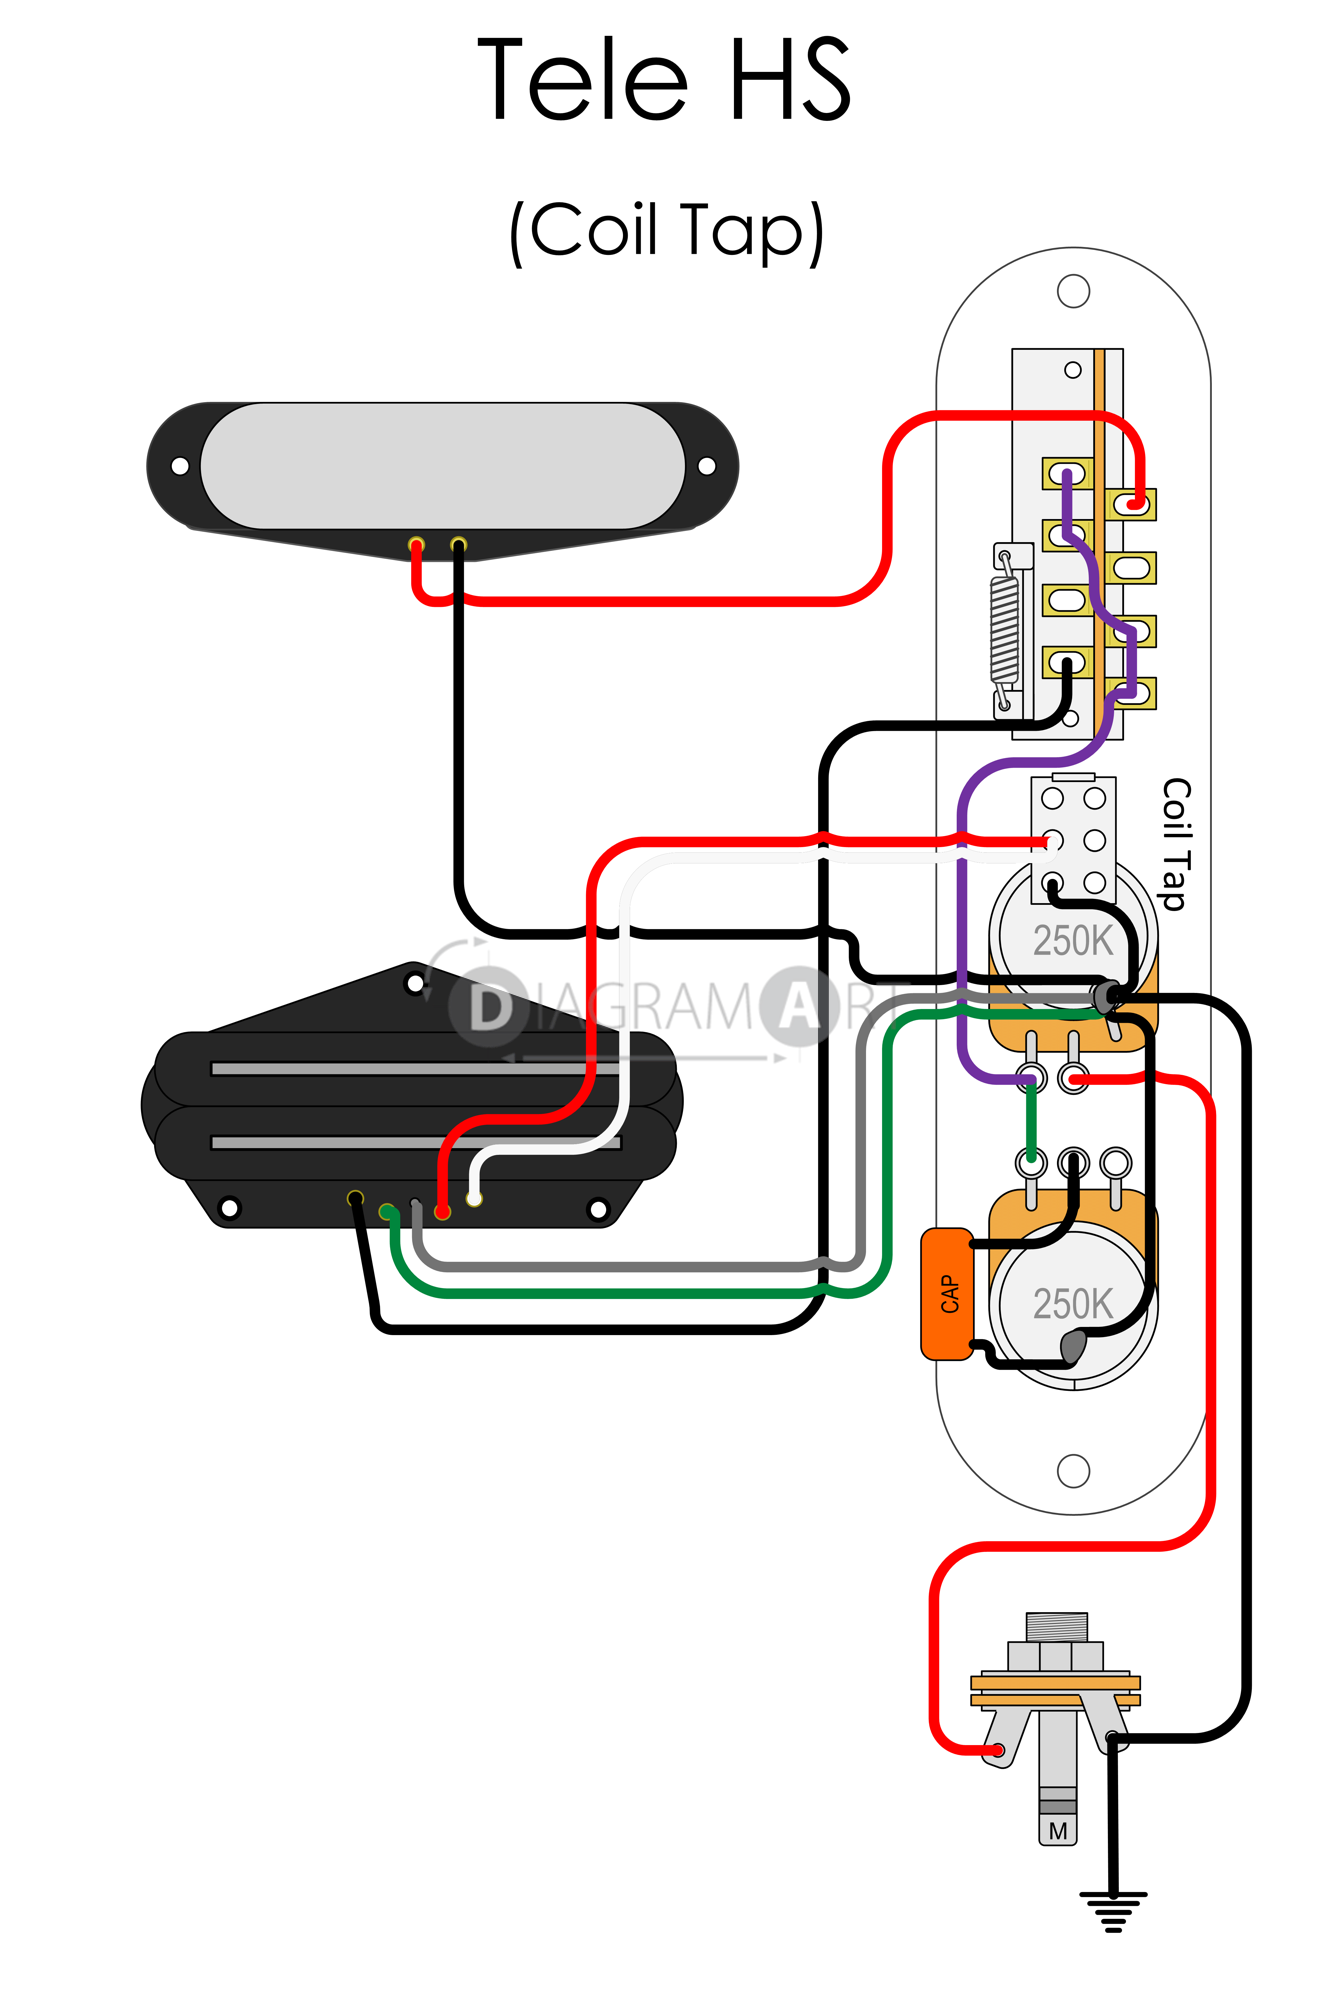 Coil Tap Diagram Detailed Schematics Gfs Wiring Electric Guitar Tele Hs Circuit Single Humbucker